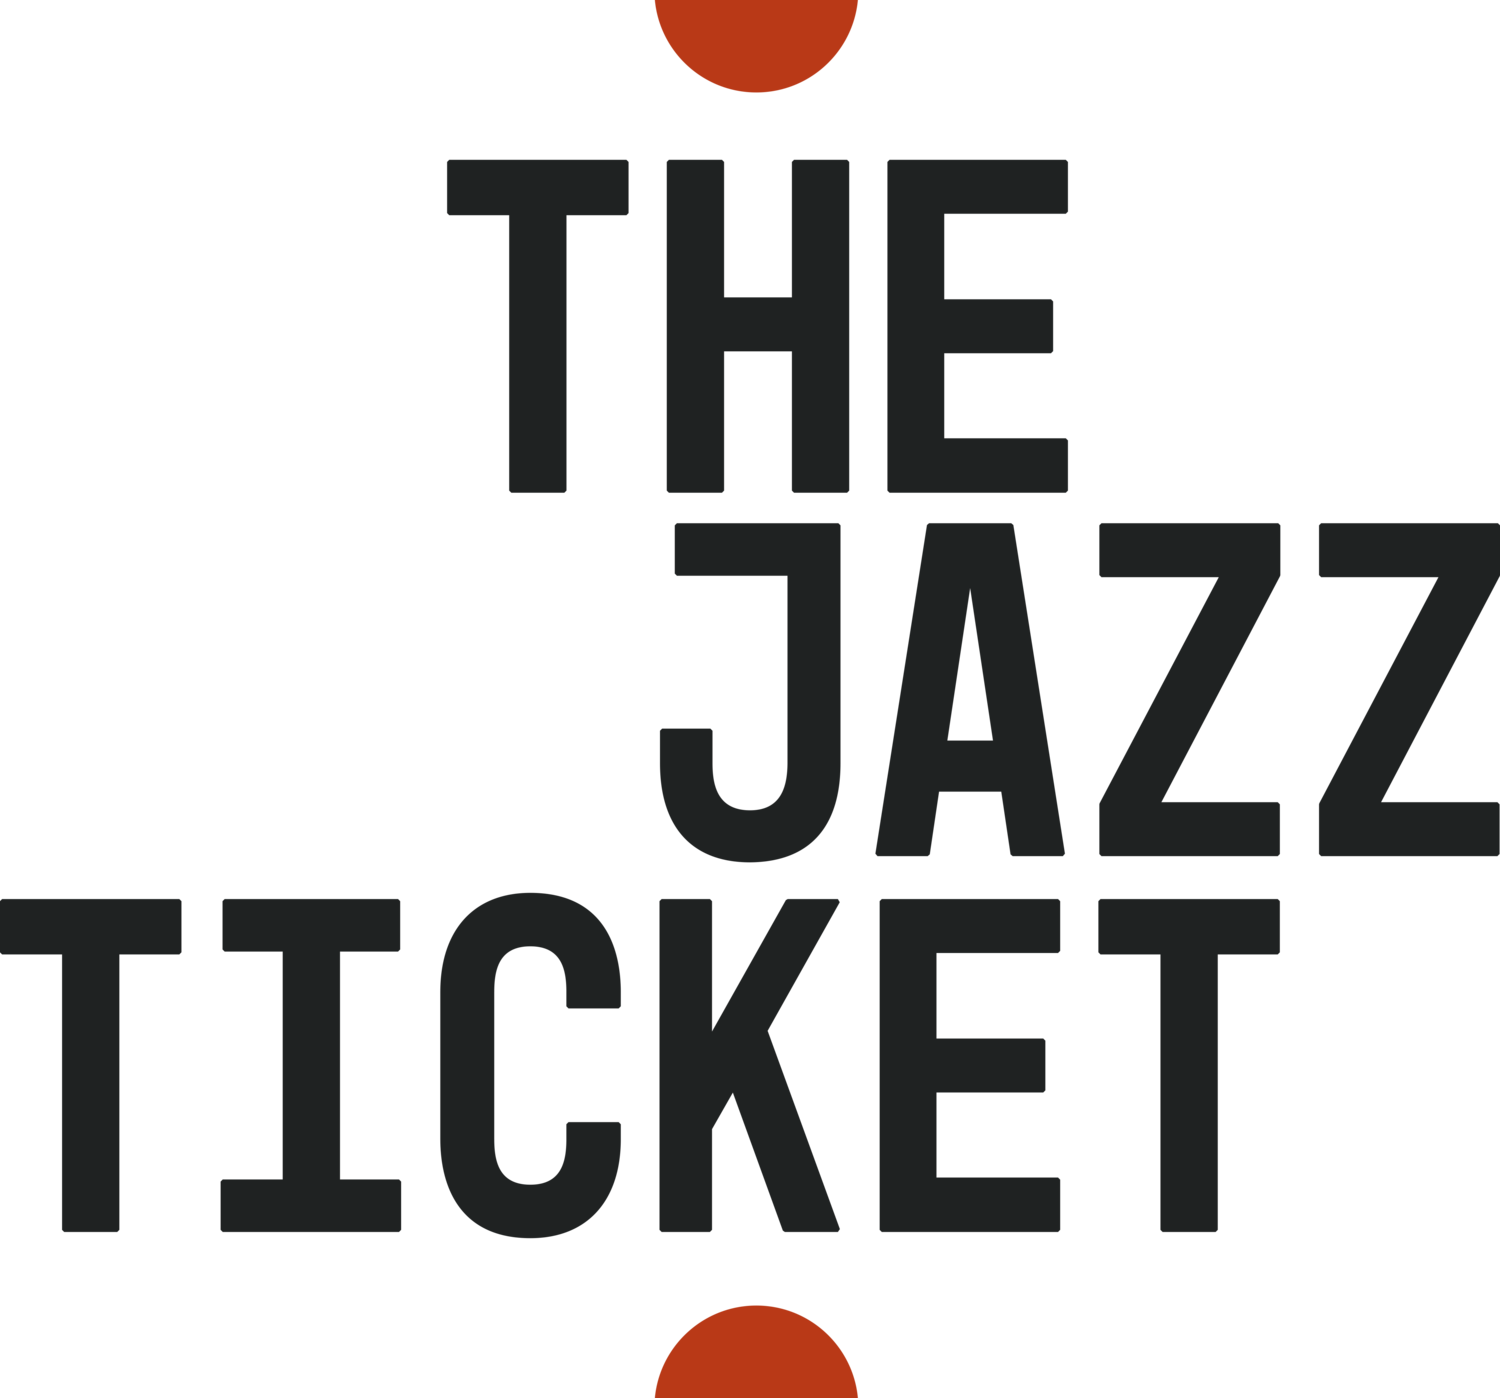 The Jazz Ticket